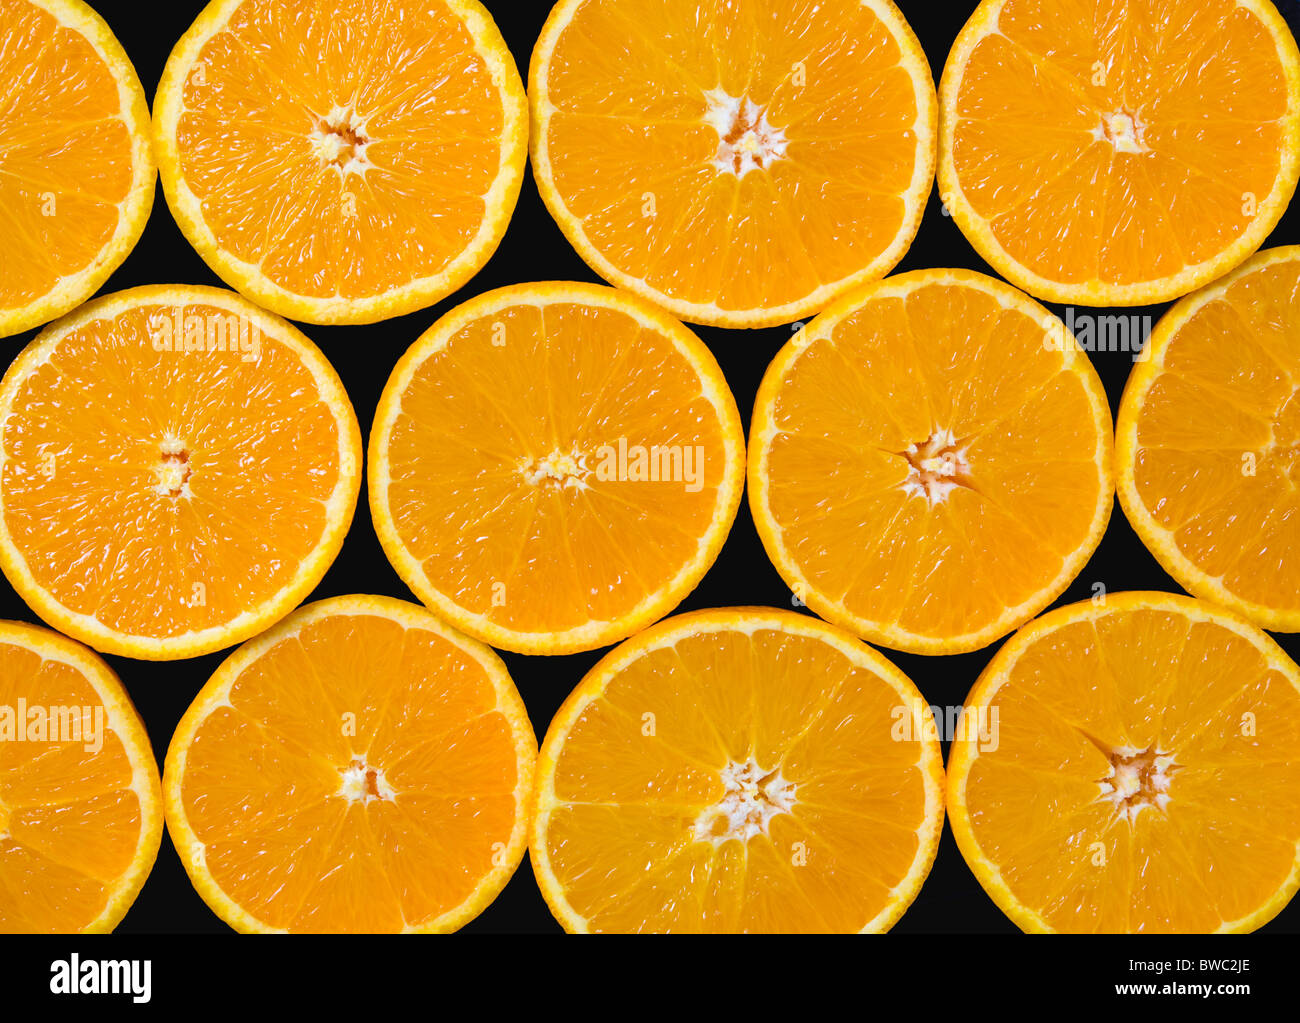 Food, Fruit, Oranges, Overhead view of group of oranges cut in half showing core and segments against a black background. - Stock Image